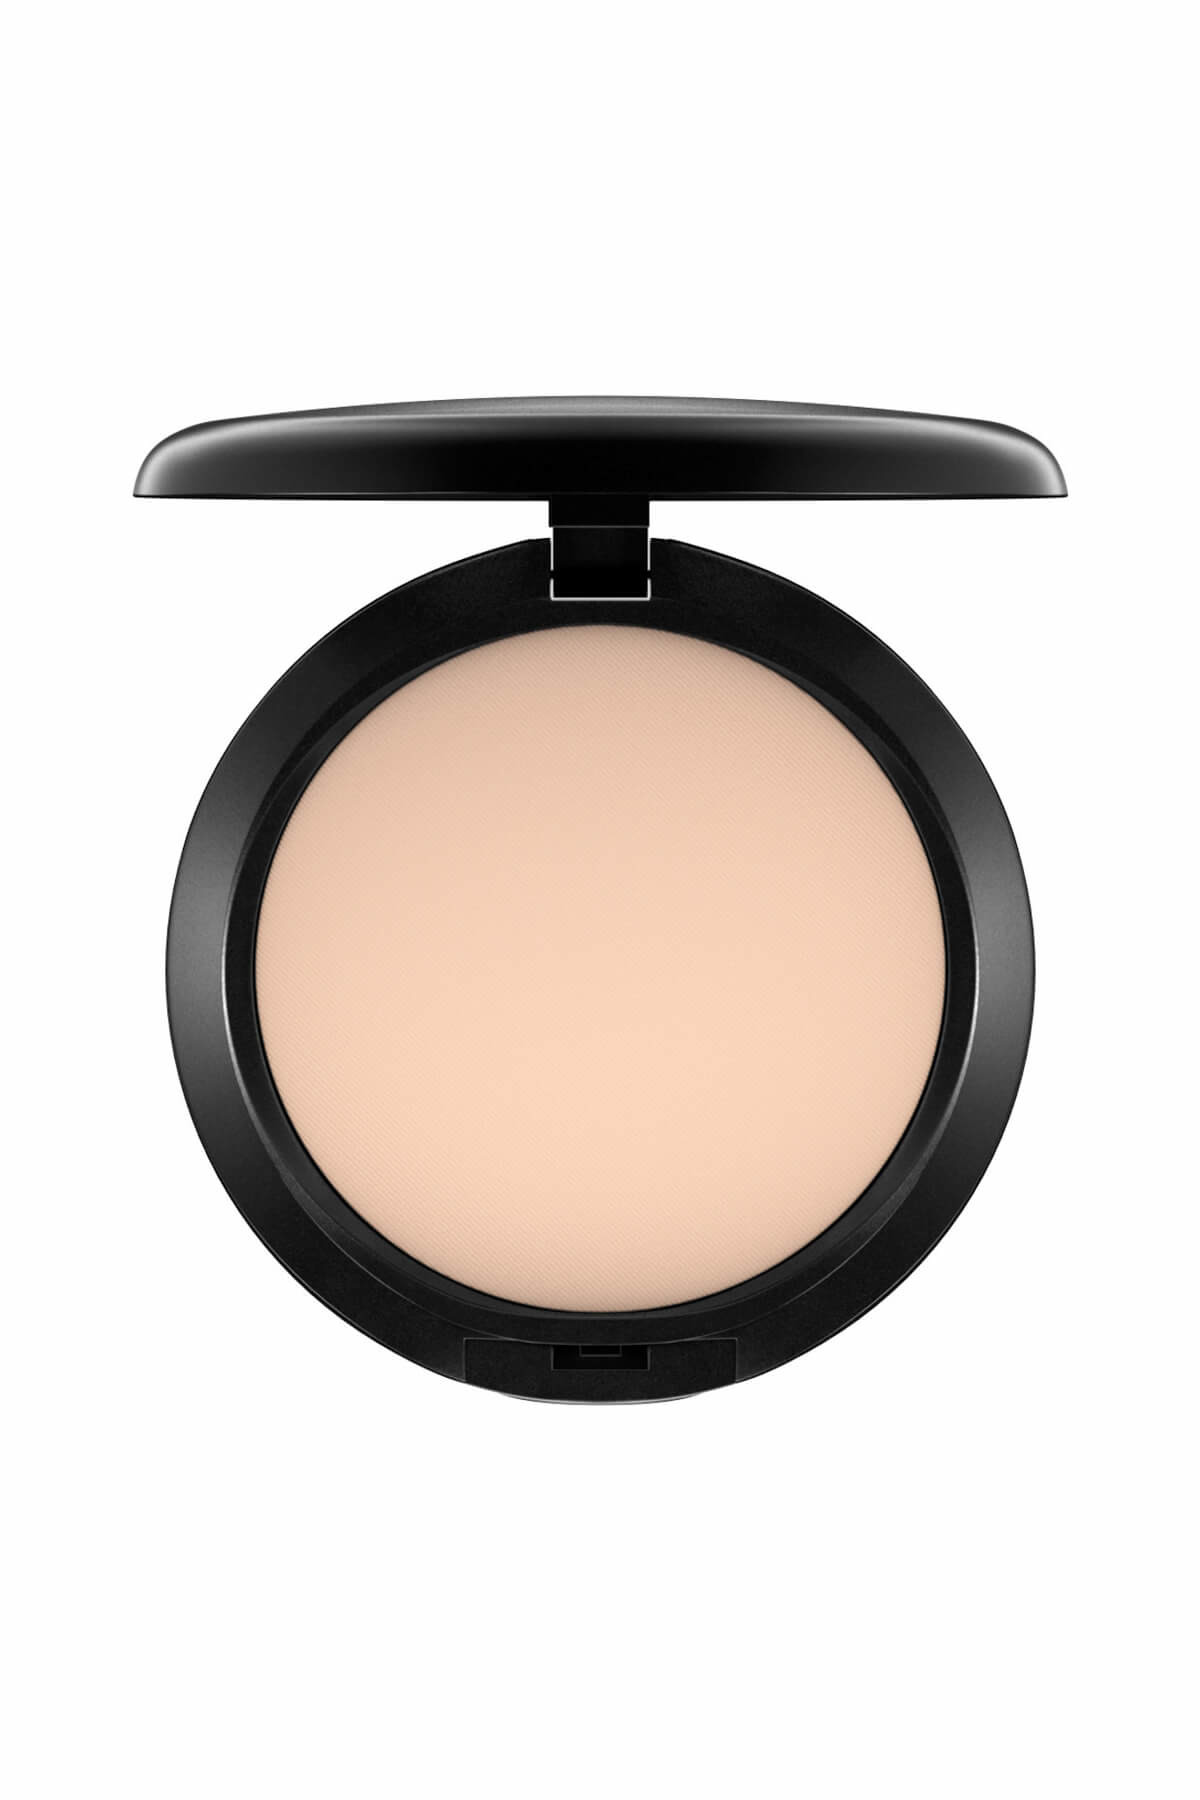 M.a.c Fondöten – Studio Fix Powder Plus Foundation Nc15 15 G 773602010646 – 189.0 TL